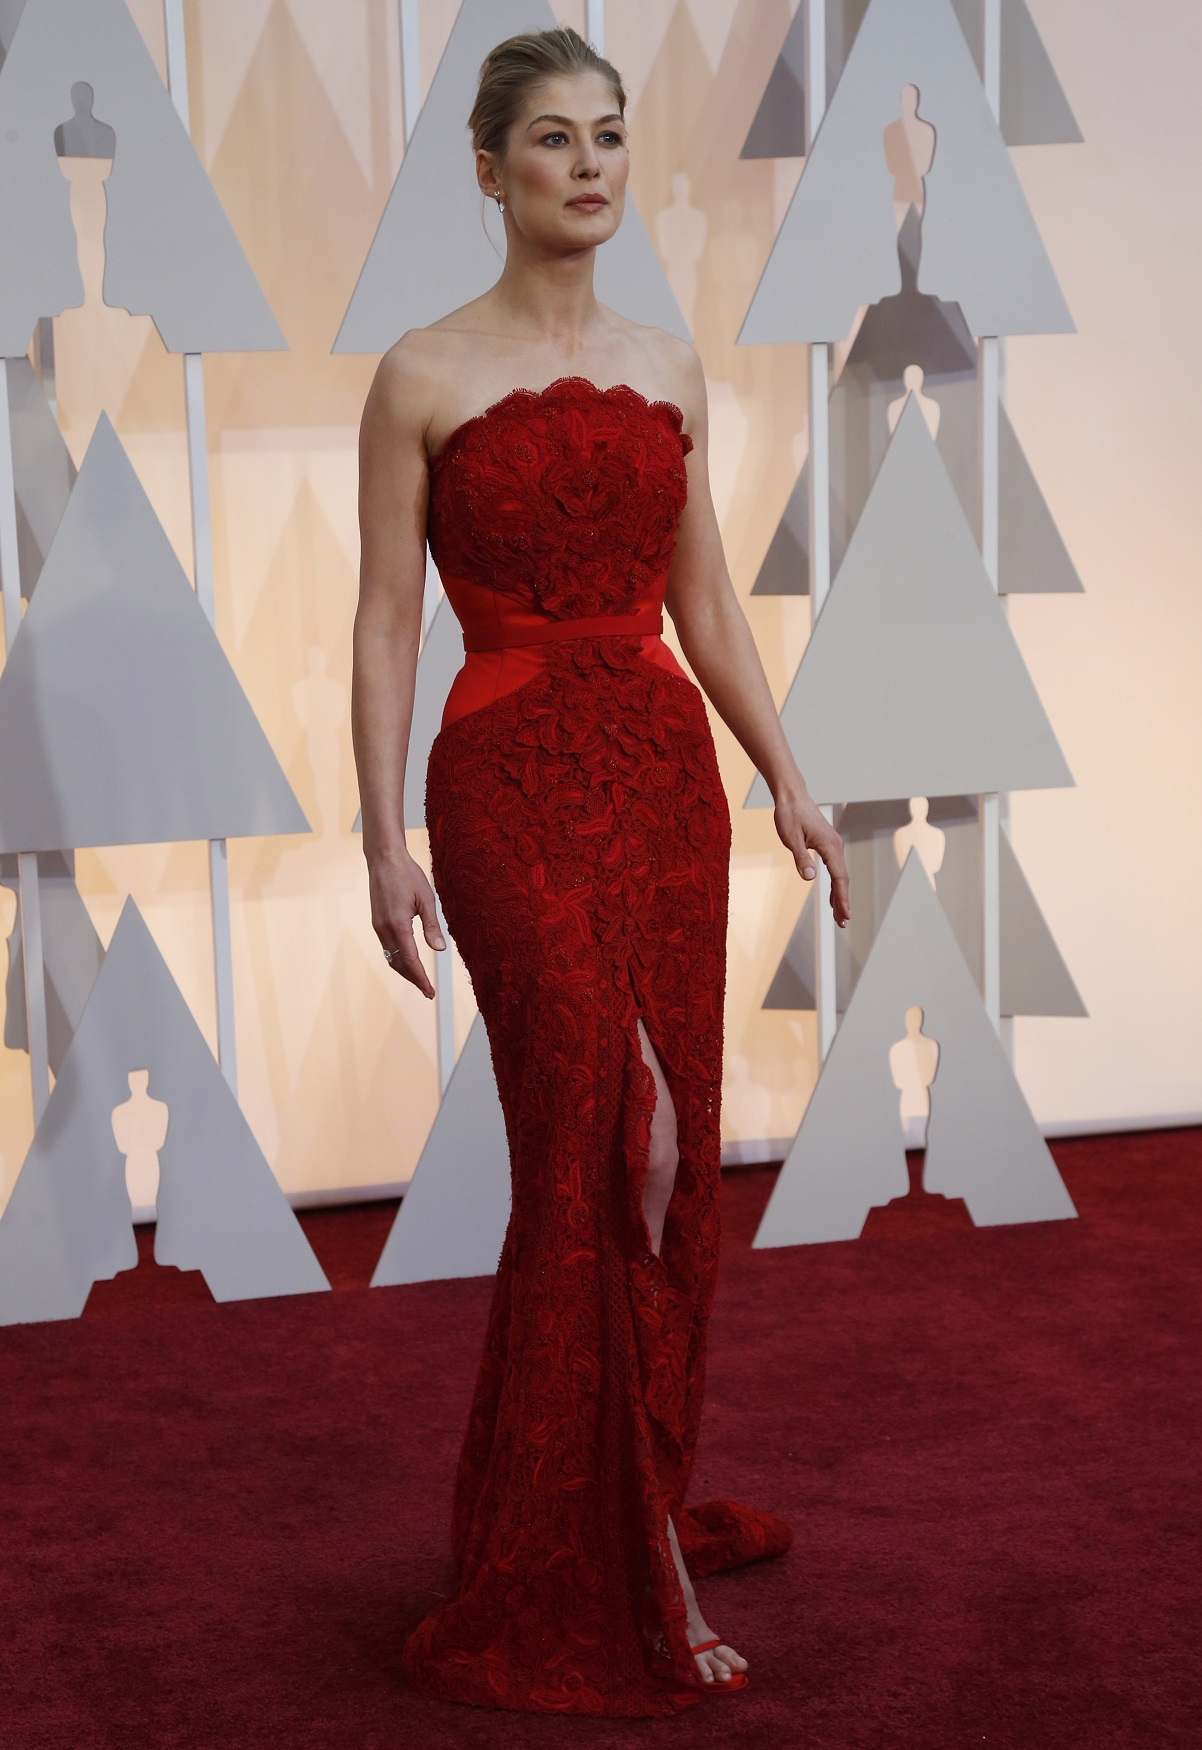 Best actress nominee Pike arrives at the 87th Academy Awards in Hollywood